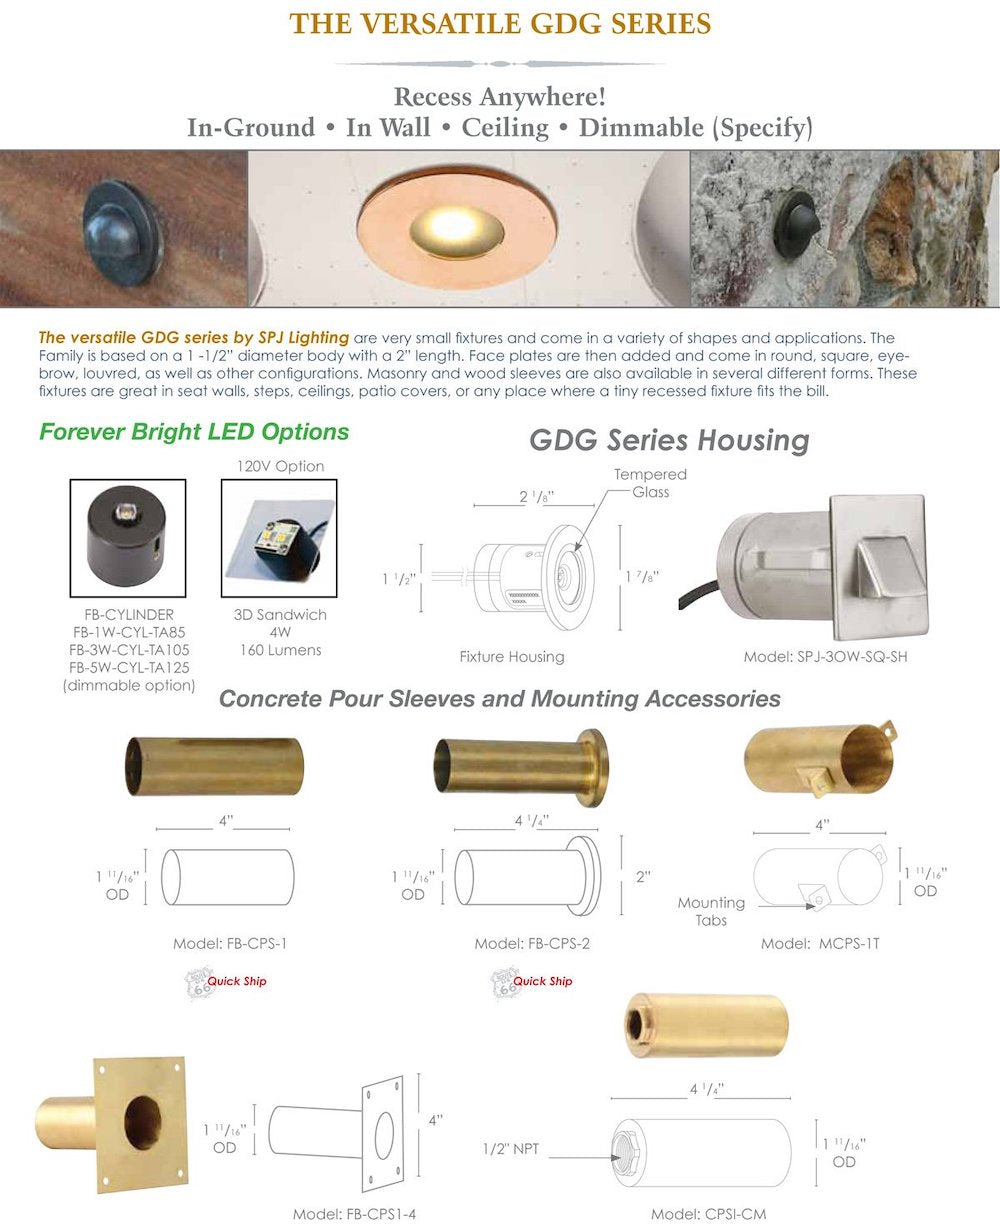 SPJ GDG Series Product & Mounting Information